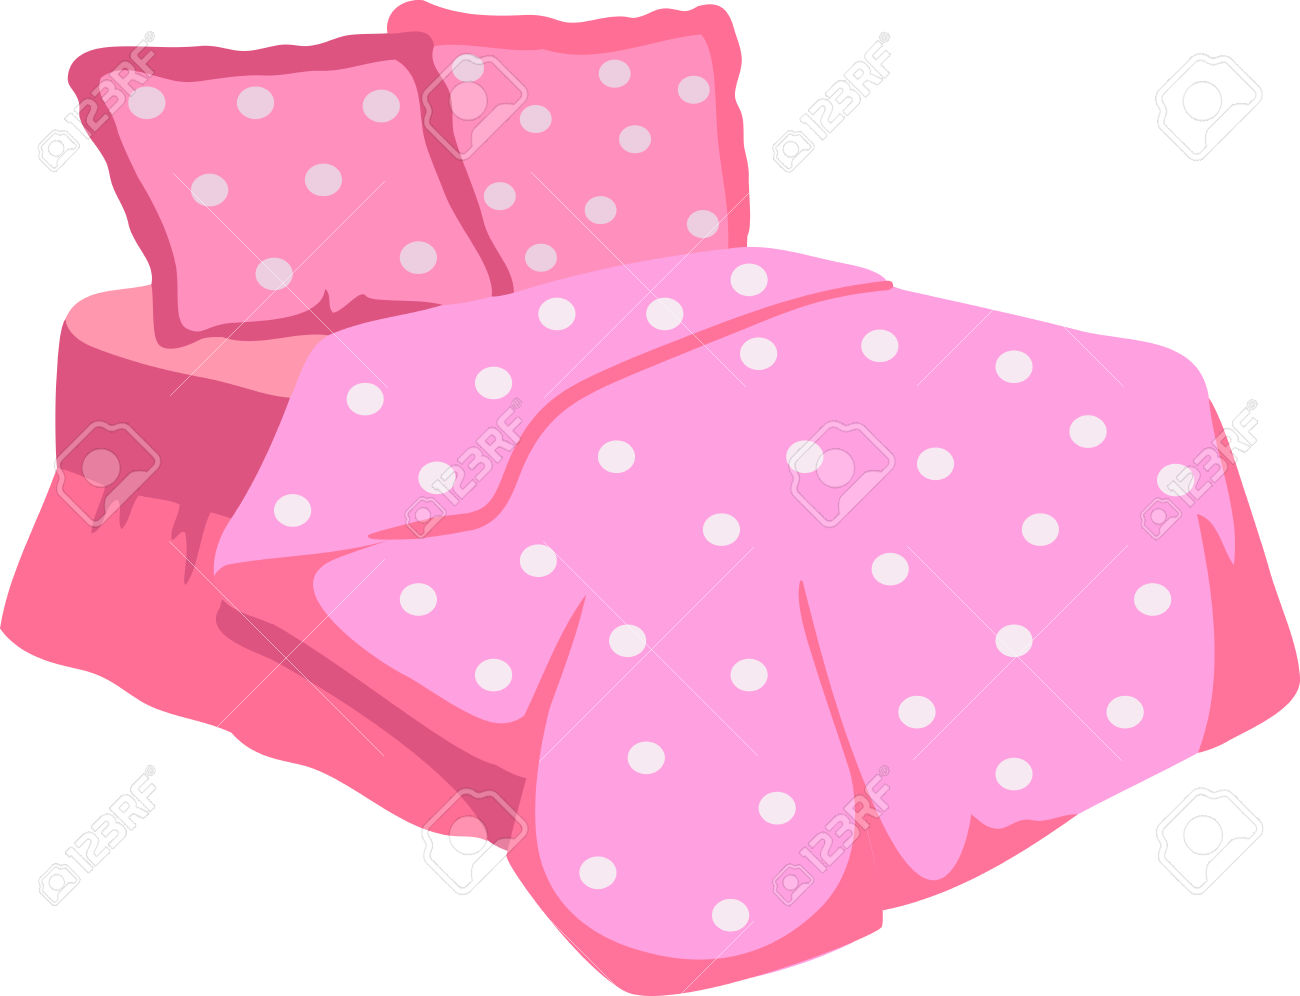 Bed With Pink Blanket and pillow » Clipart Station.